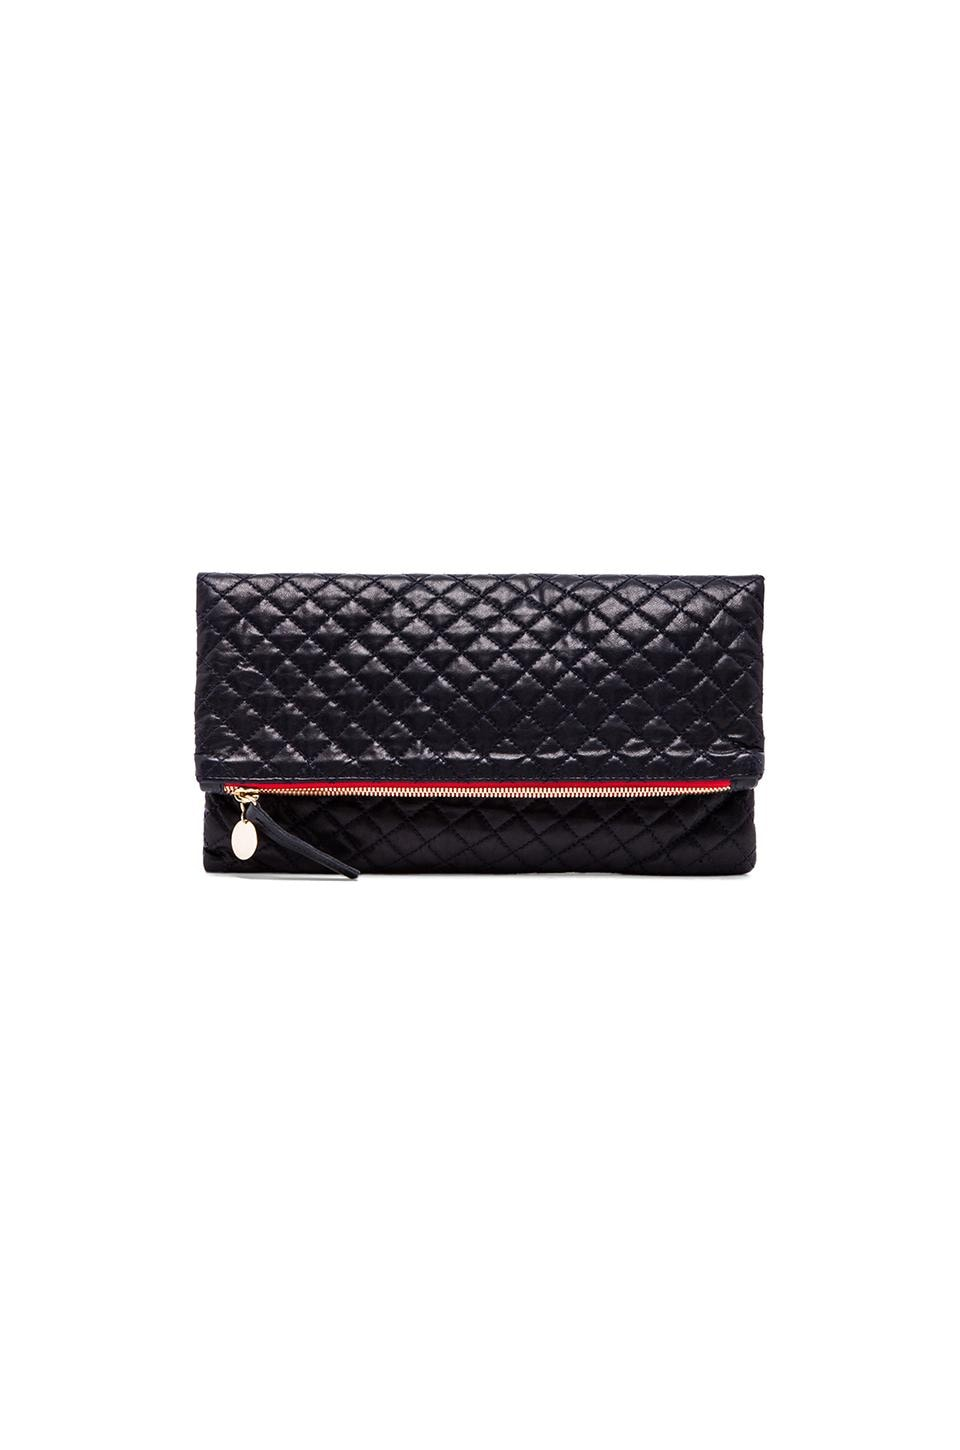 Clare V. Foldover Clutch in Navy Quilted